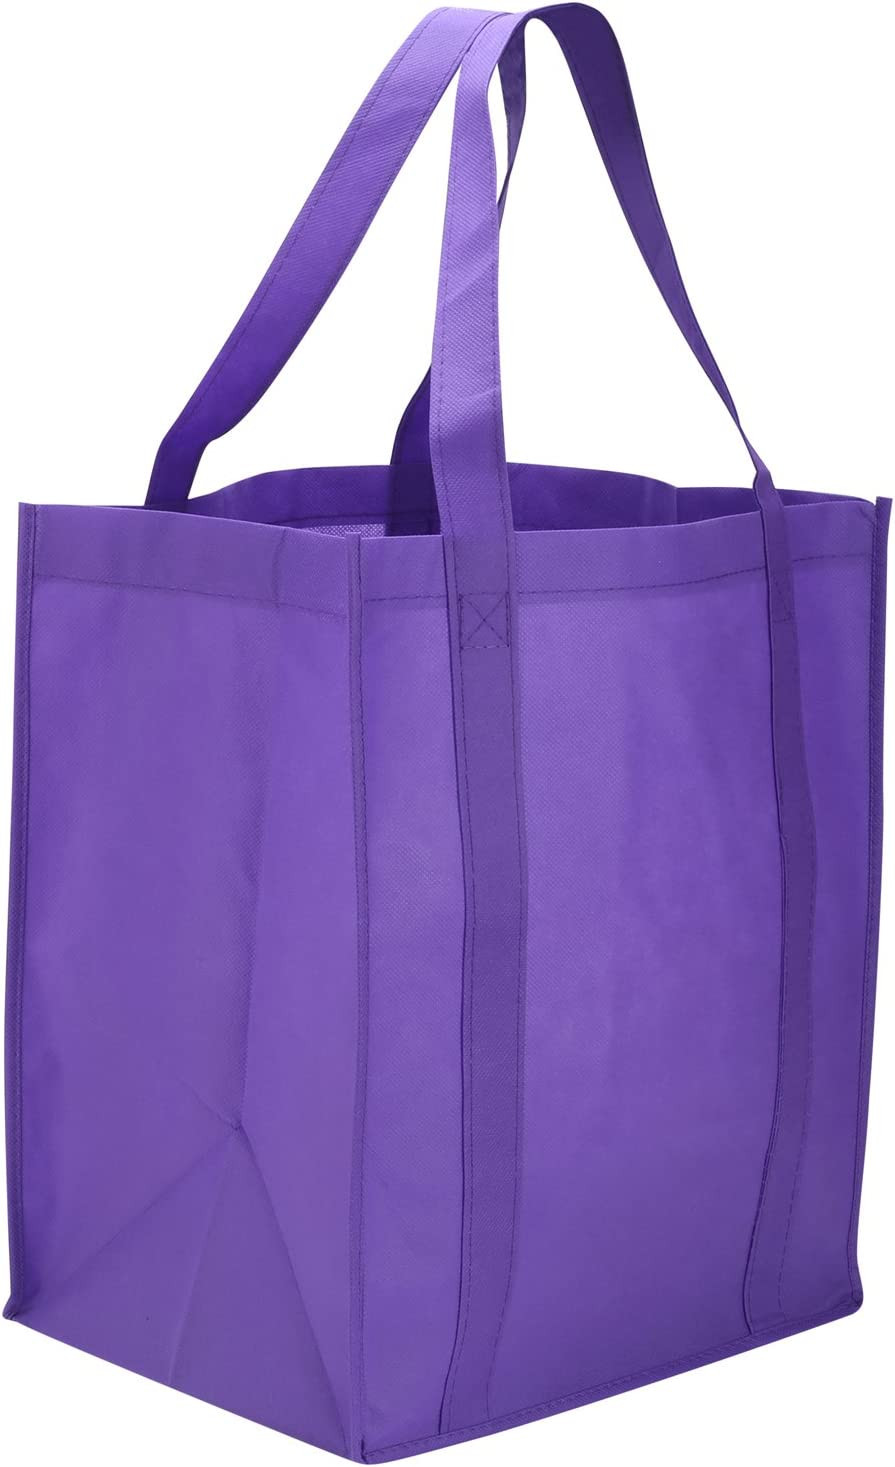 Reusable Reinforced Handle Grocery Tote Bag Large (10 Pack)Purple